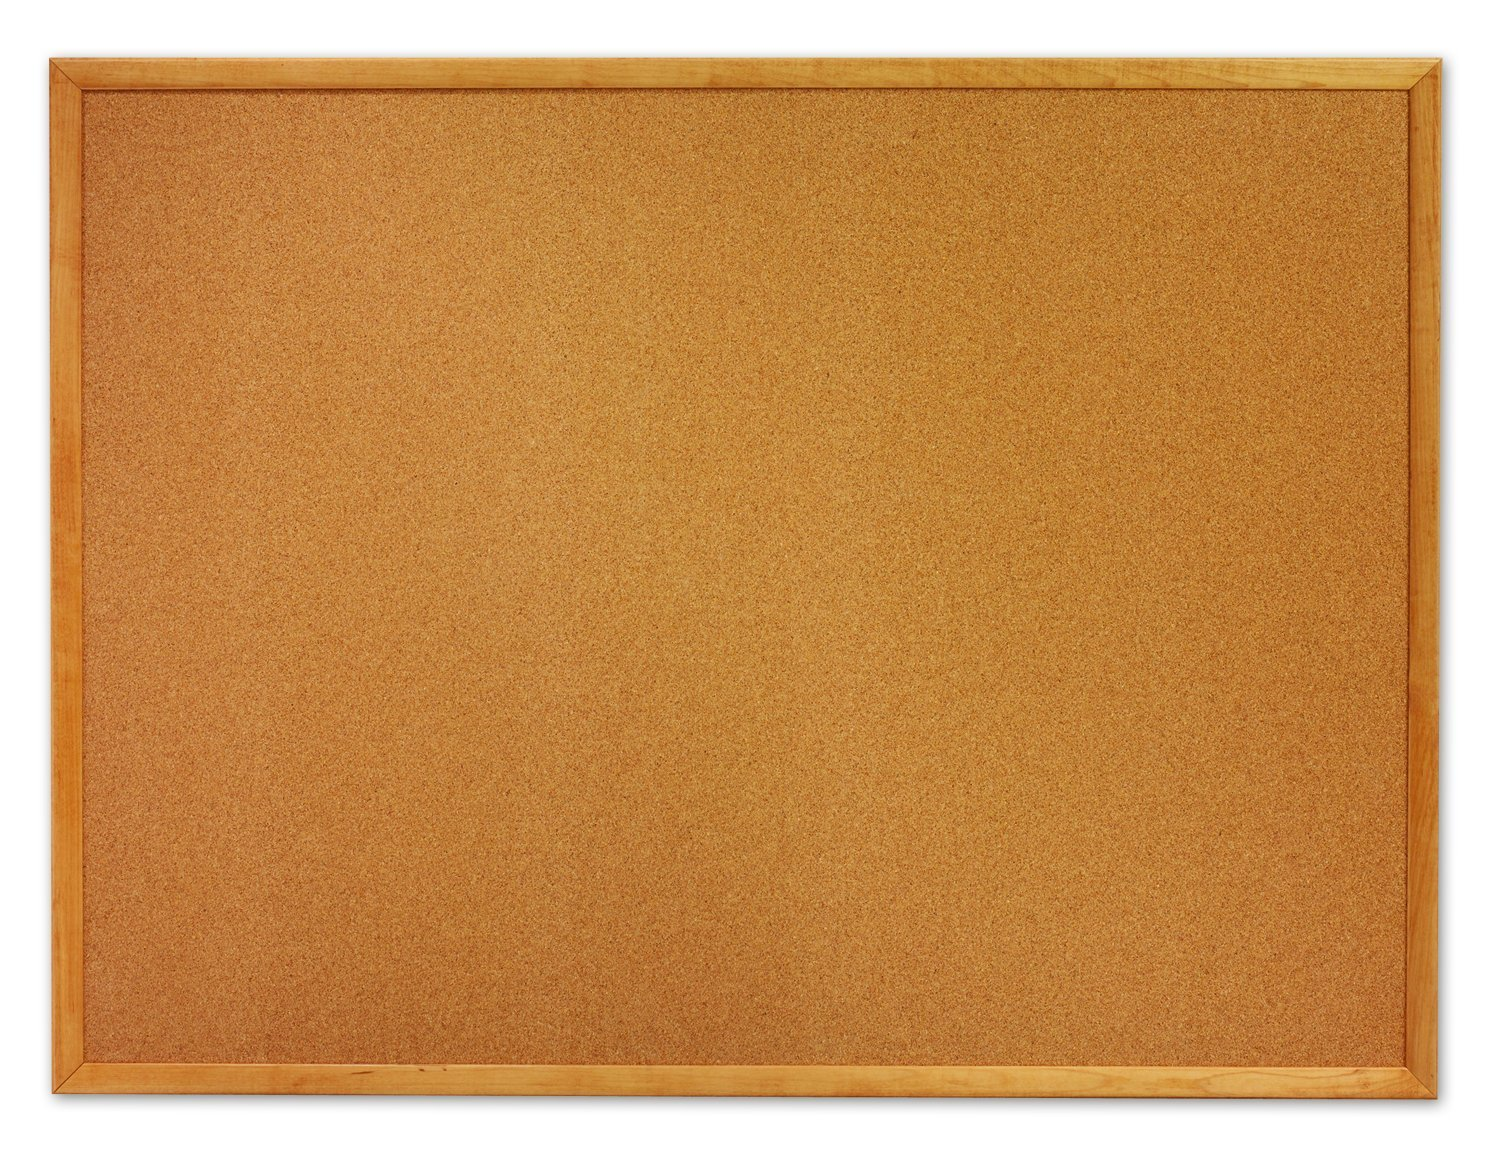 B00D632TA2 - Quartet Bulletin Board, Cork Board, 2 ft x 3ft (24 inches x 36 inches) Oak Wood Finish Frame (MWDB2436-ECR) ACCO Brands